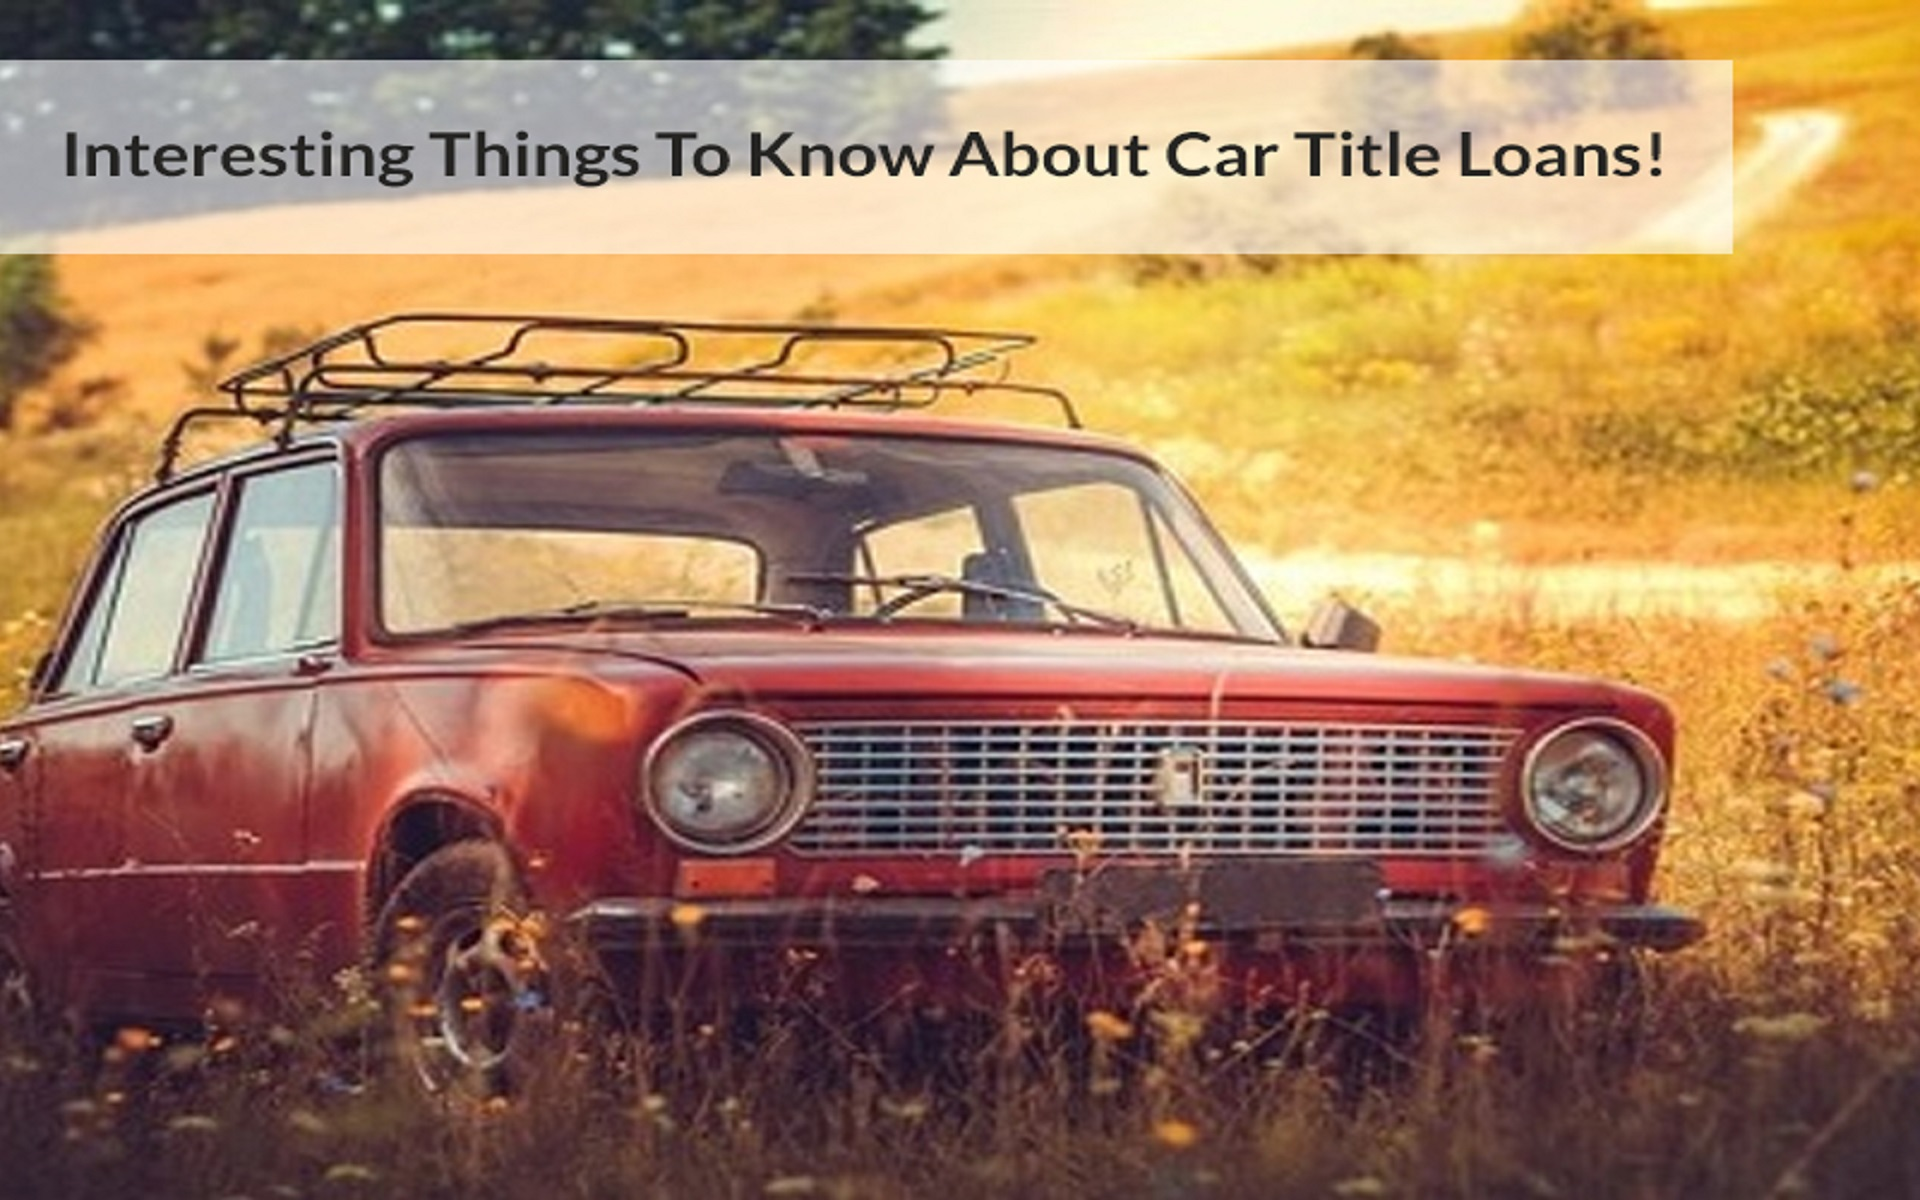 Interesting-Things-To-Know-About-Car-Title-Loans!